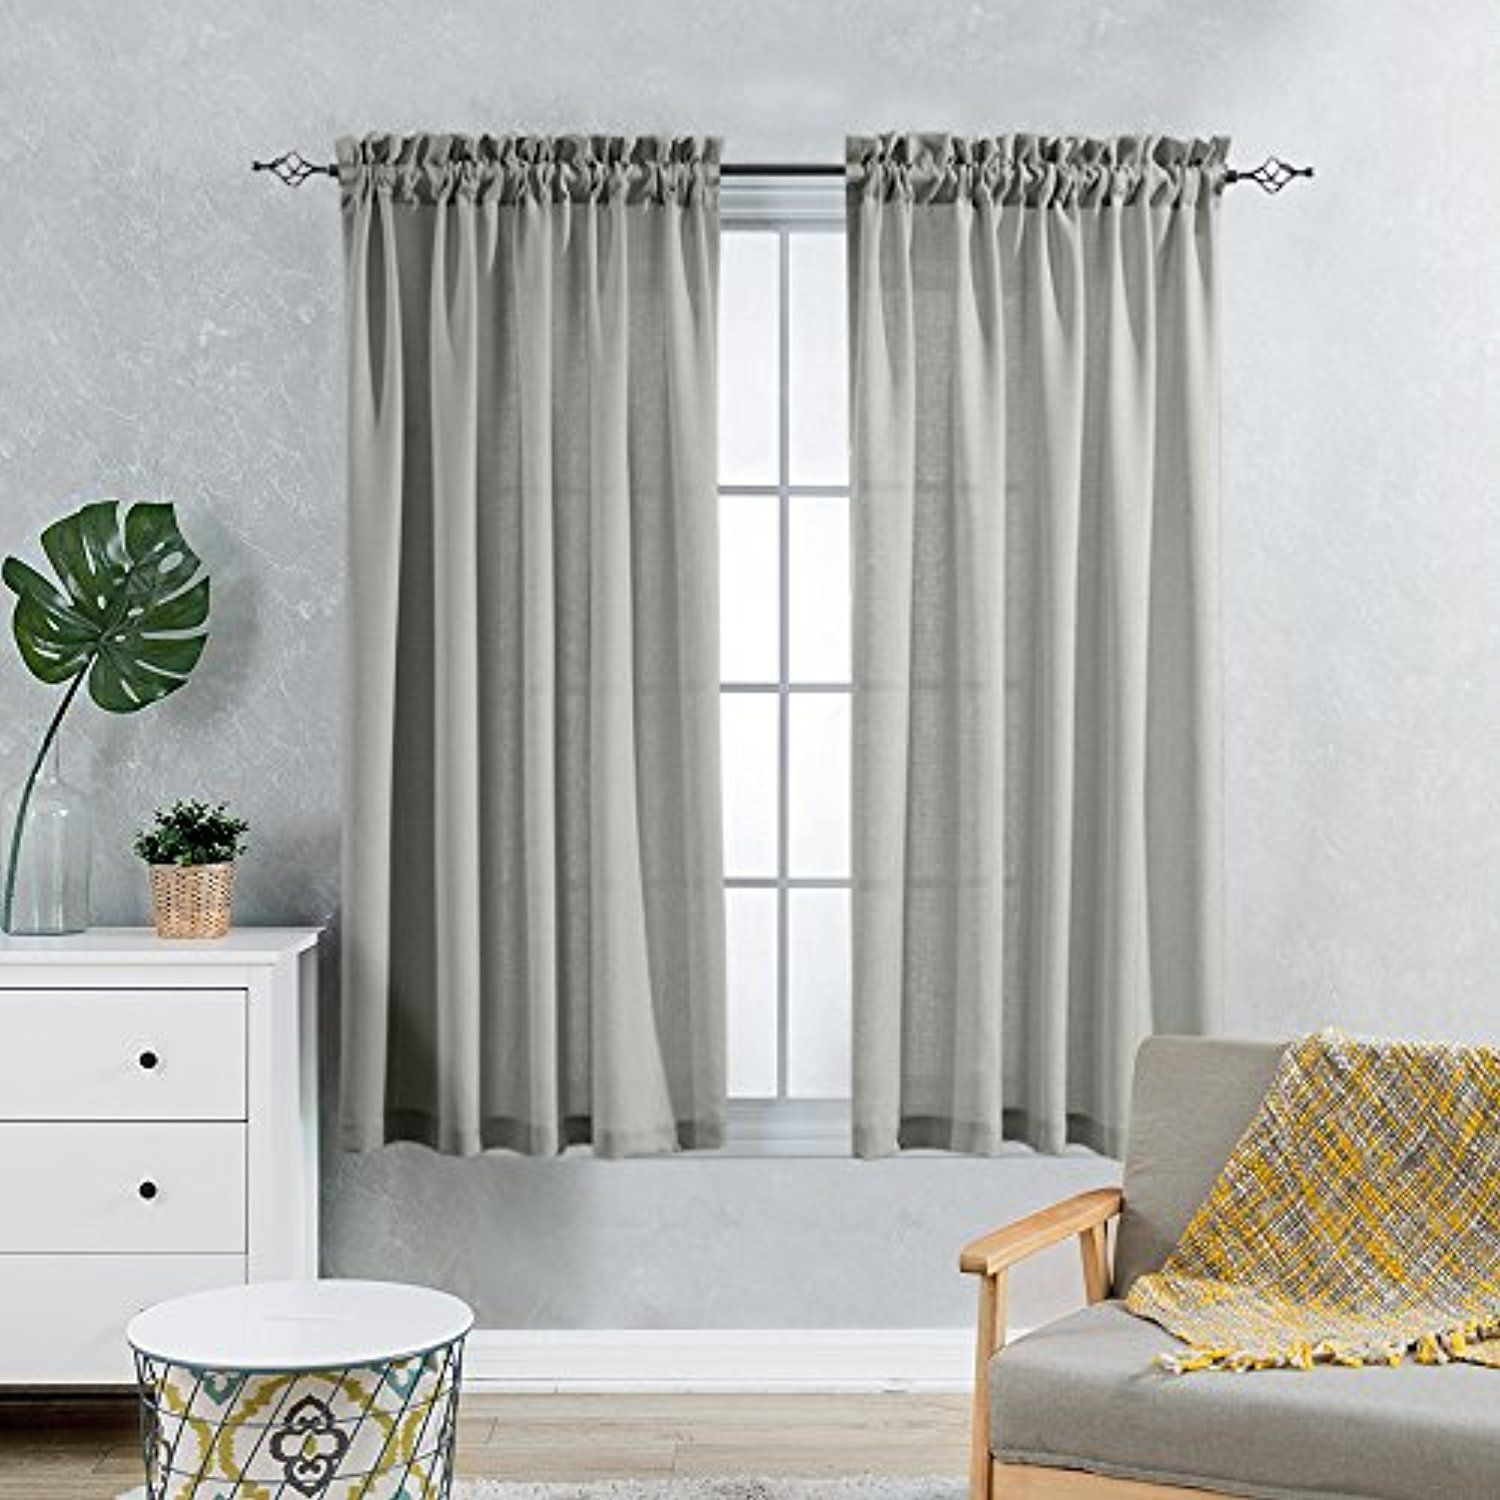 Grey Voile Curtains For Living Room Semi Sheer Window Curtain Panels Sheers For Bedroom 72 Inch Length Casual Curtains Living Room Gray Sheer Curtains Curtains